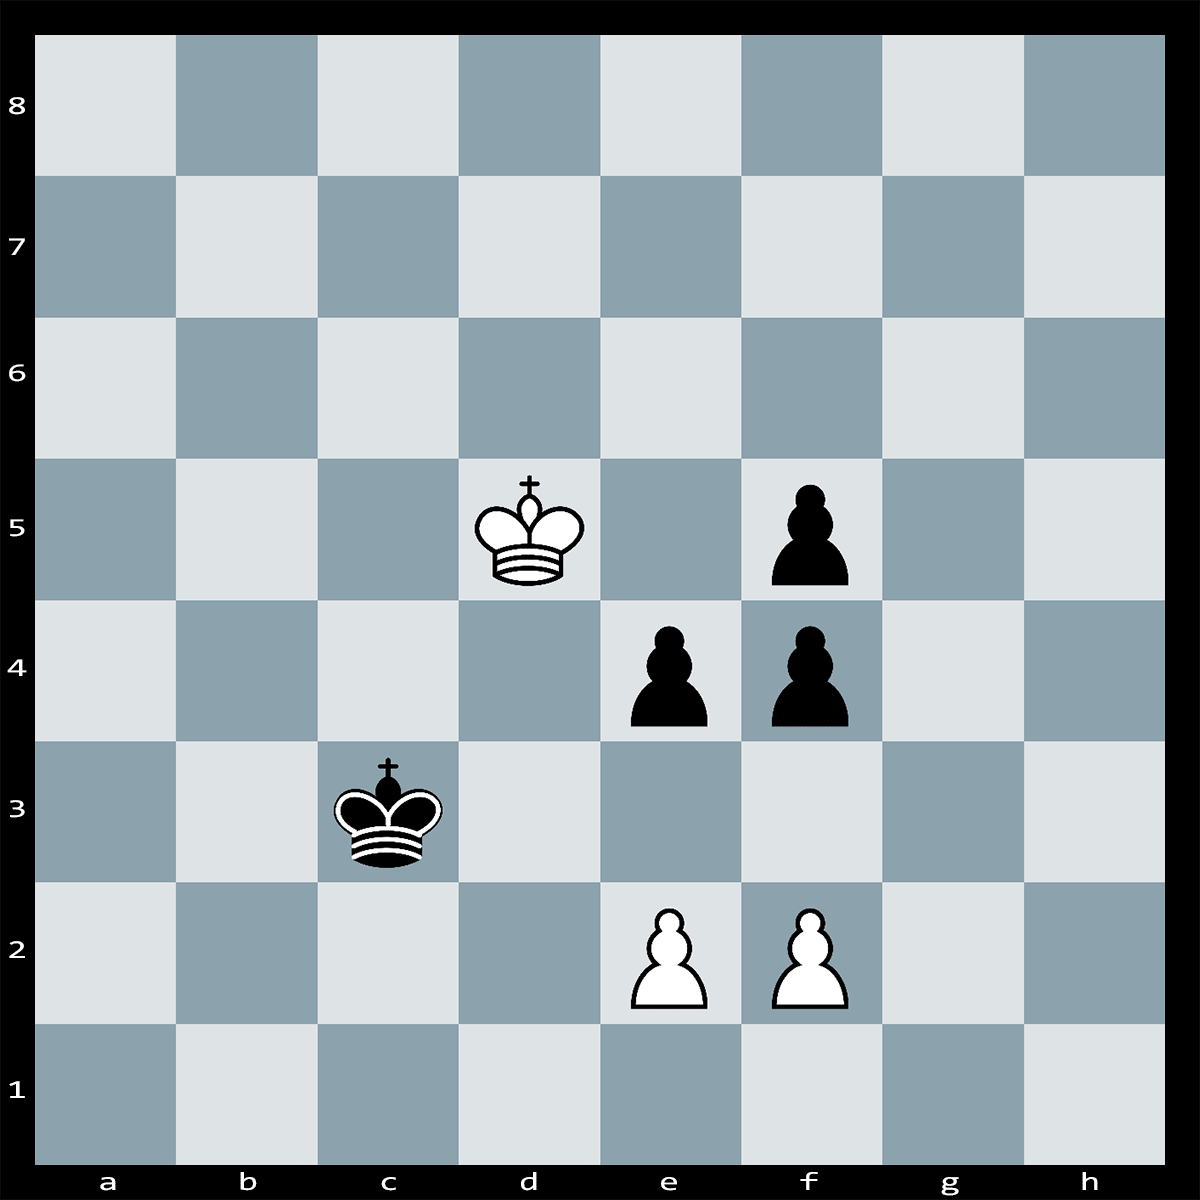 Chess Puzzle #295 | Black has an extra pawn, but it's whites move. What is White's quickest way to escape with a draw?